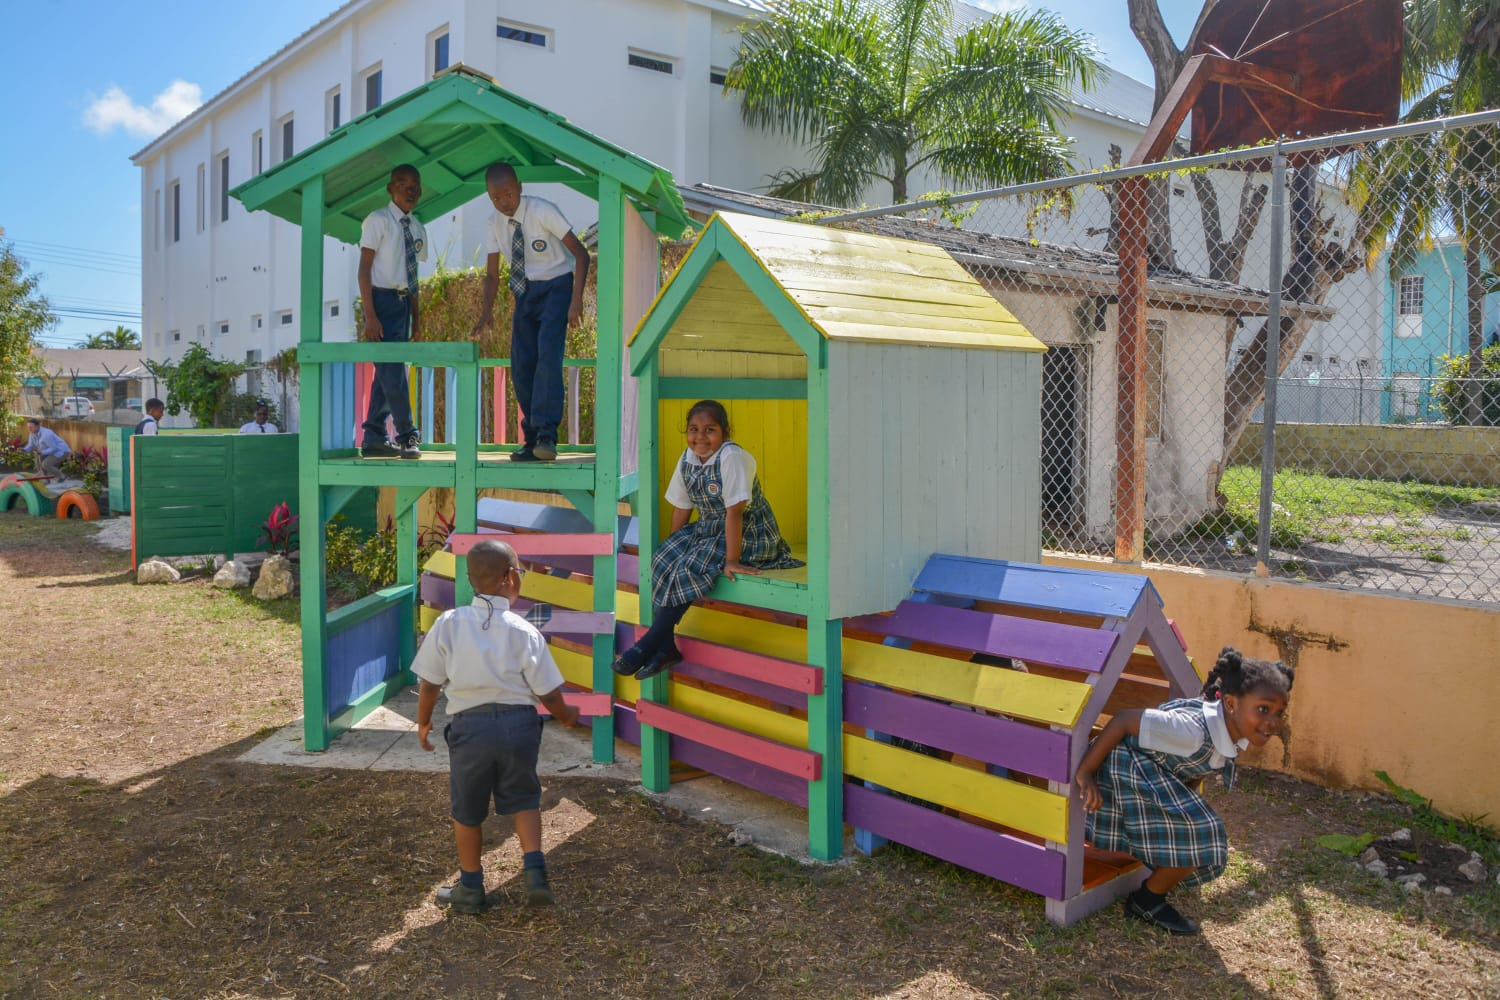 Bahamas Waste encourages 'The Power of Play' at Centerville Primary School